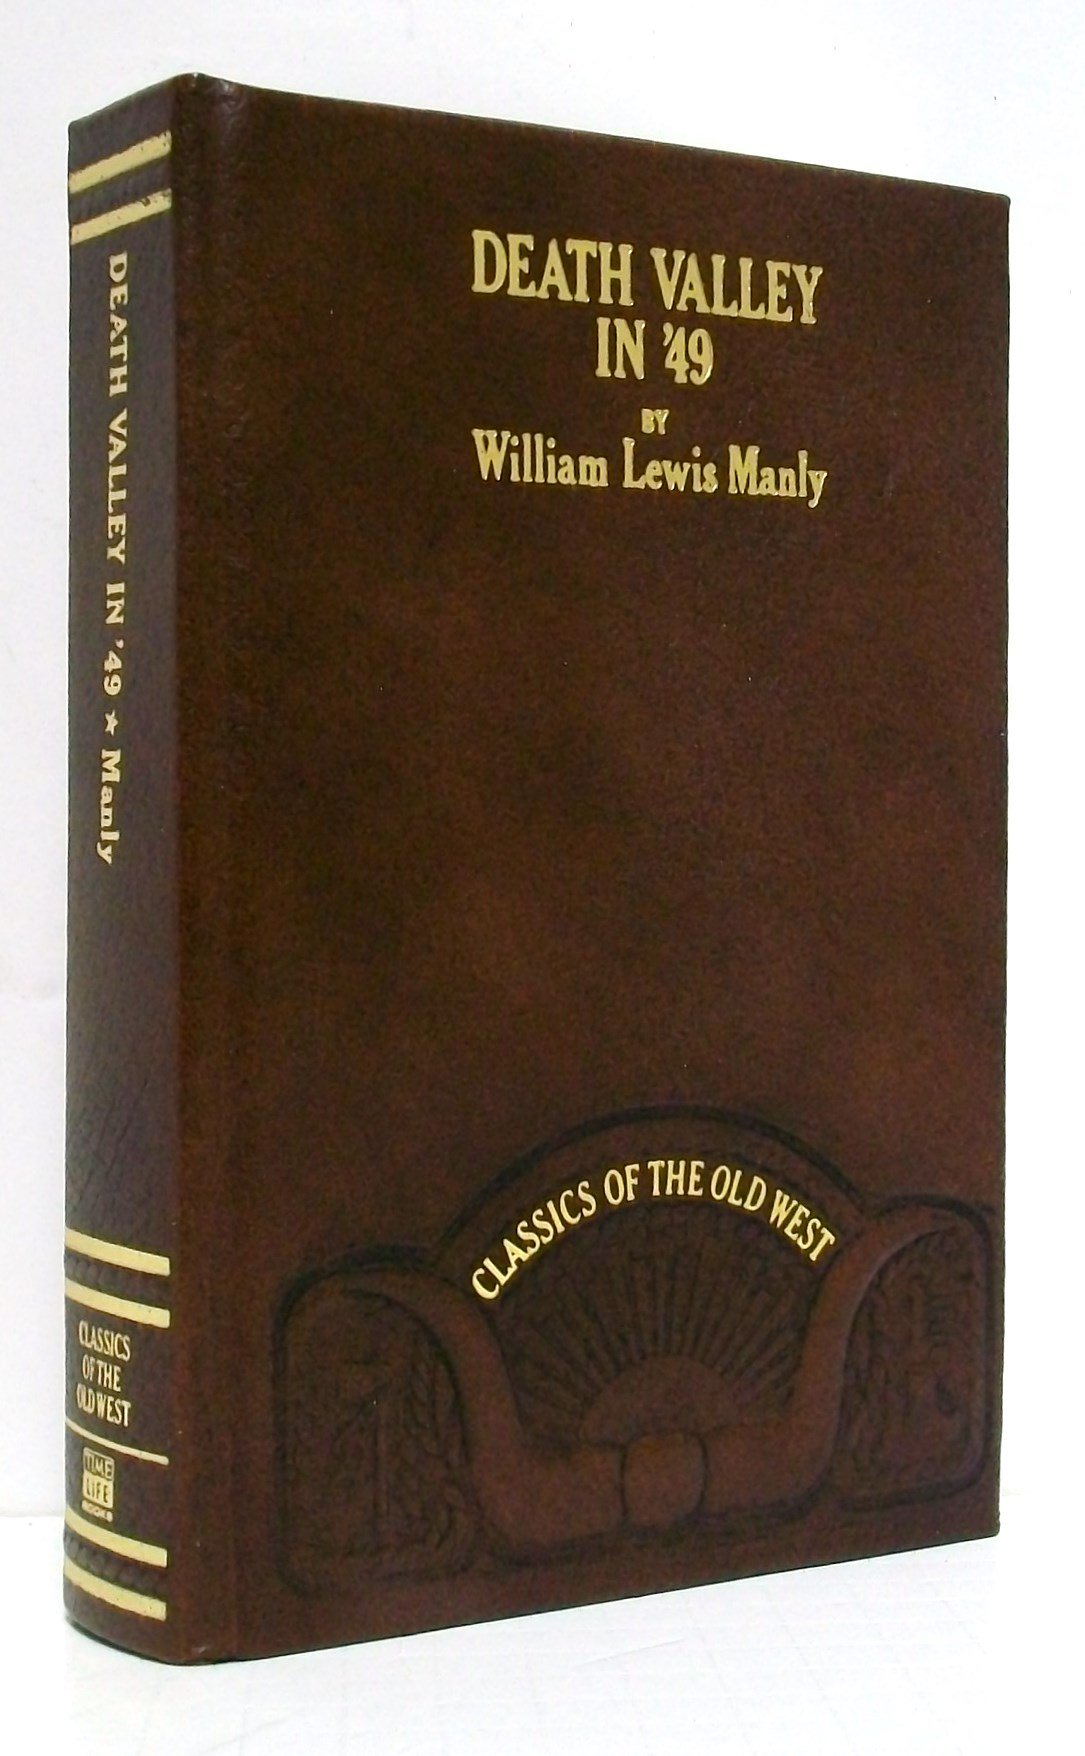 Death Valley in '49 (1849): Important chapter of California pioneer history (Classics of the Old West), Manly, William Lewis